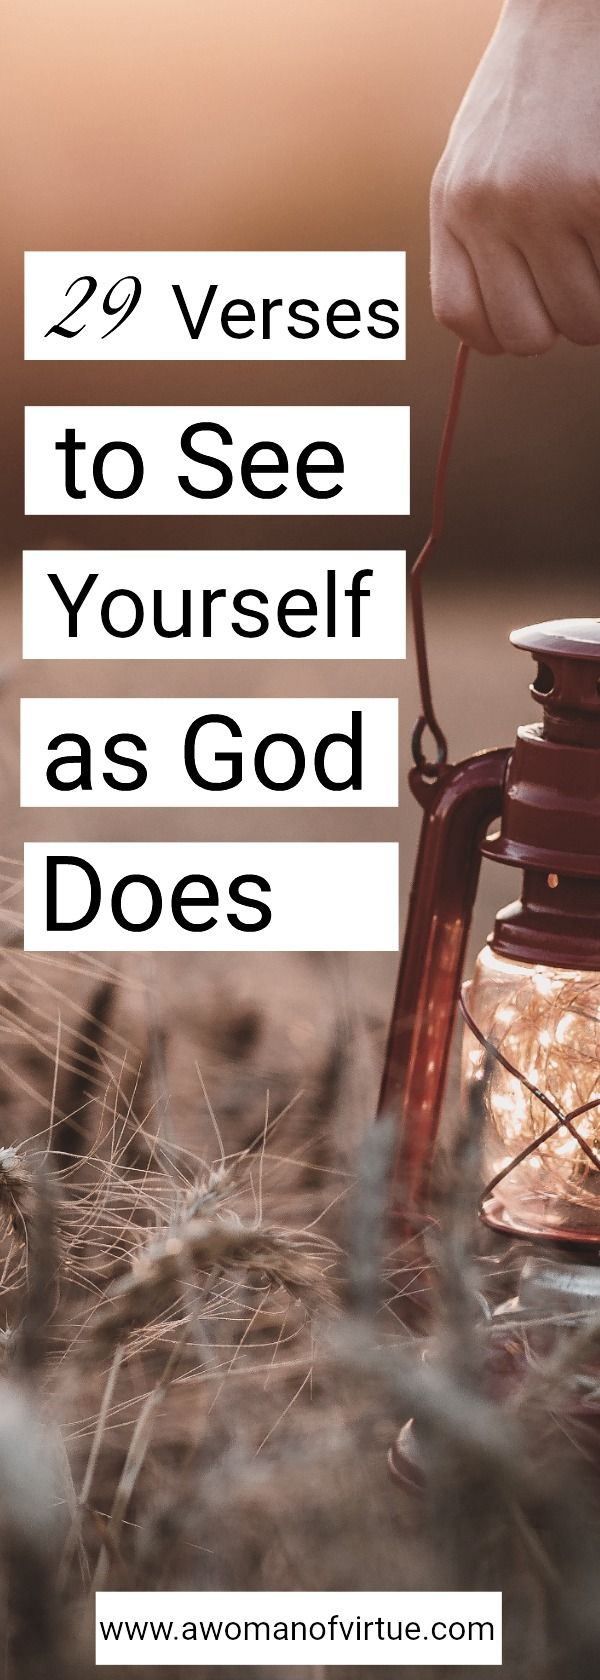 As a woman who has been saved since I was just a young girl, one might think that I of all people ought to know what God thinks of me. Truth is—I should. But I don't.